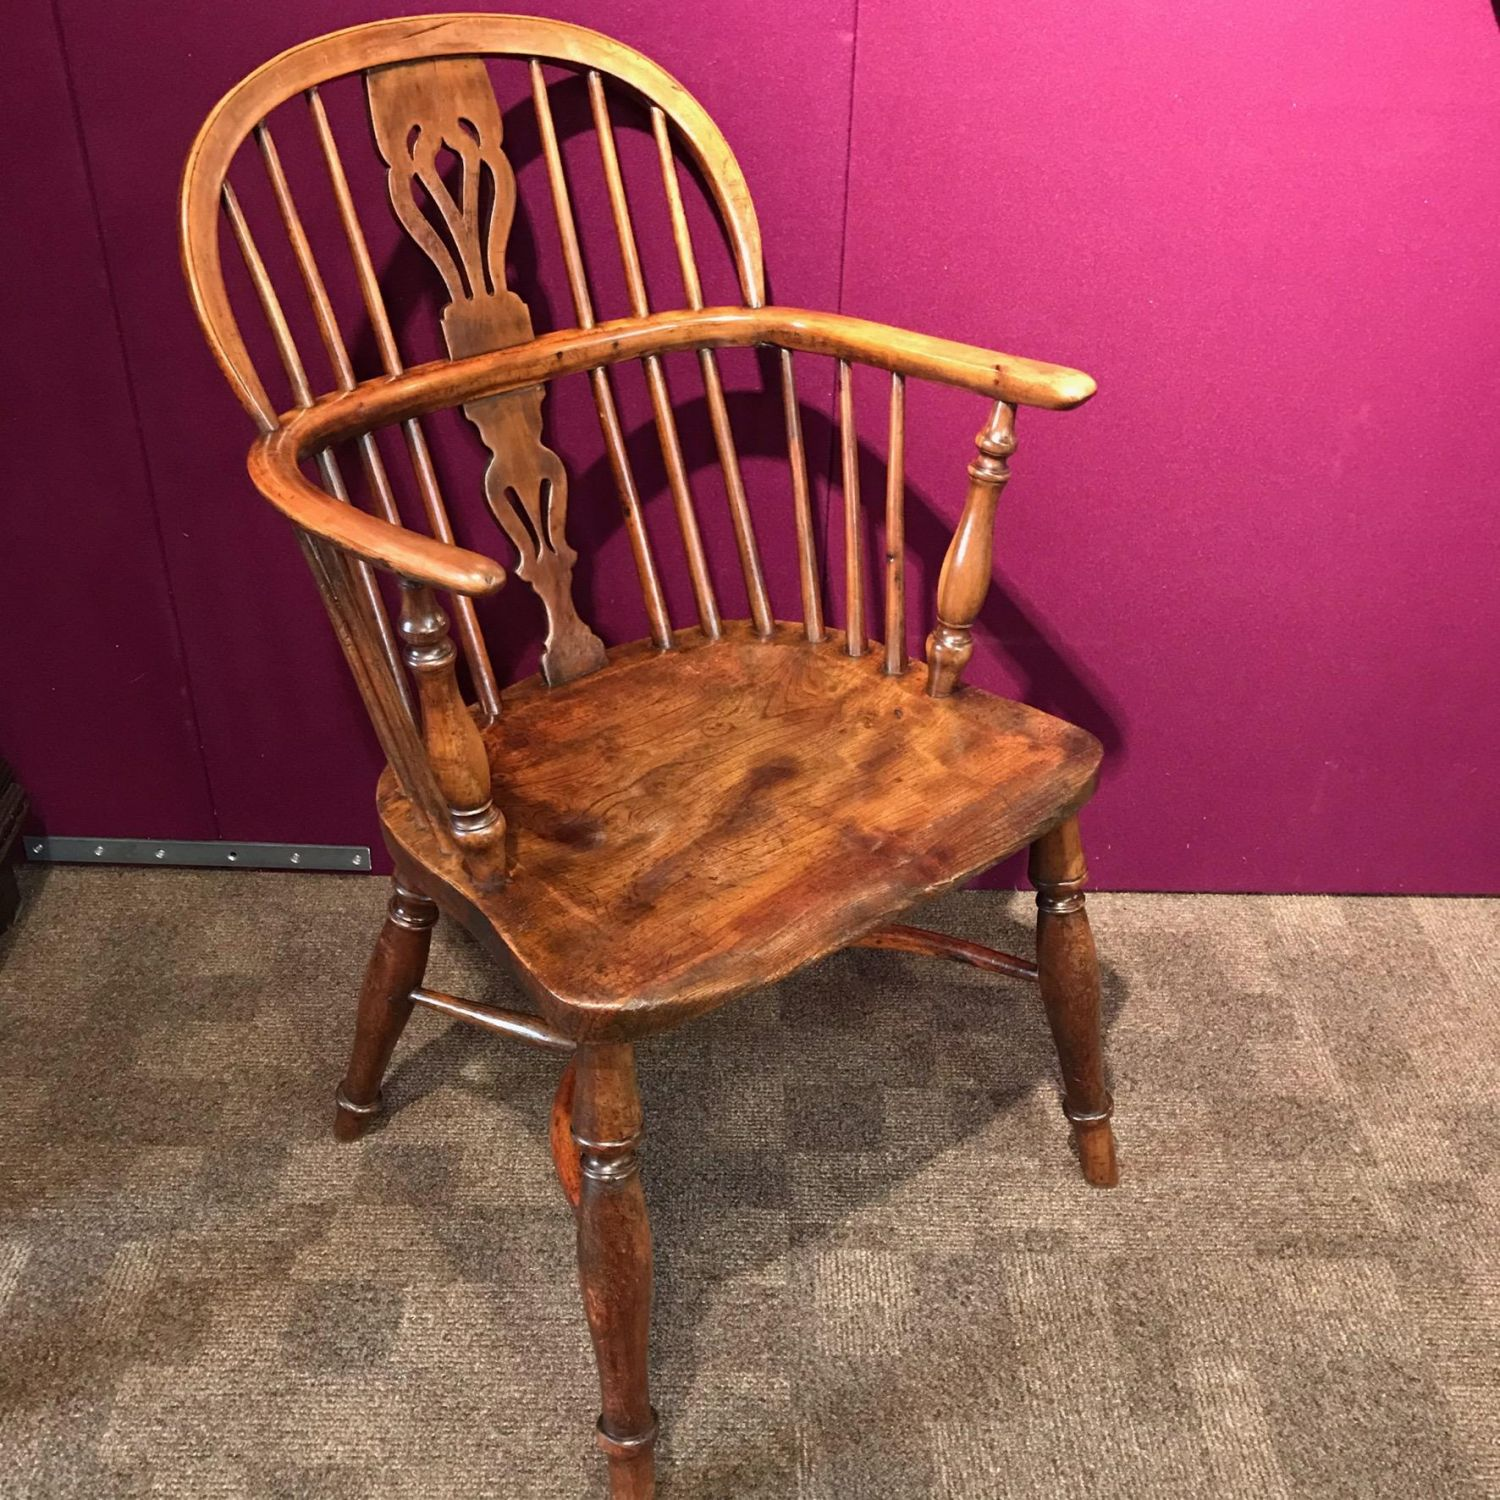 Antique Windsor Chairs Dining: 19th Century Yew And Elm Windsor Chair